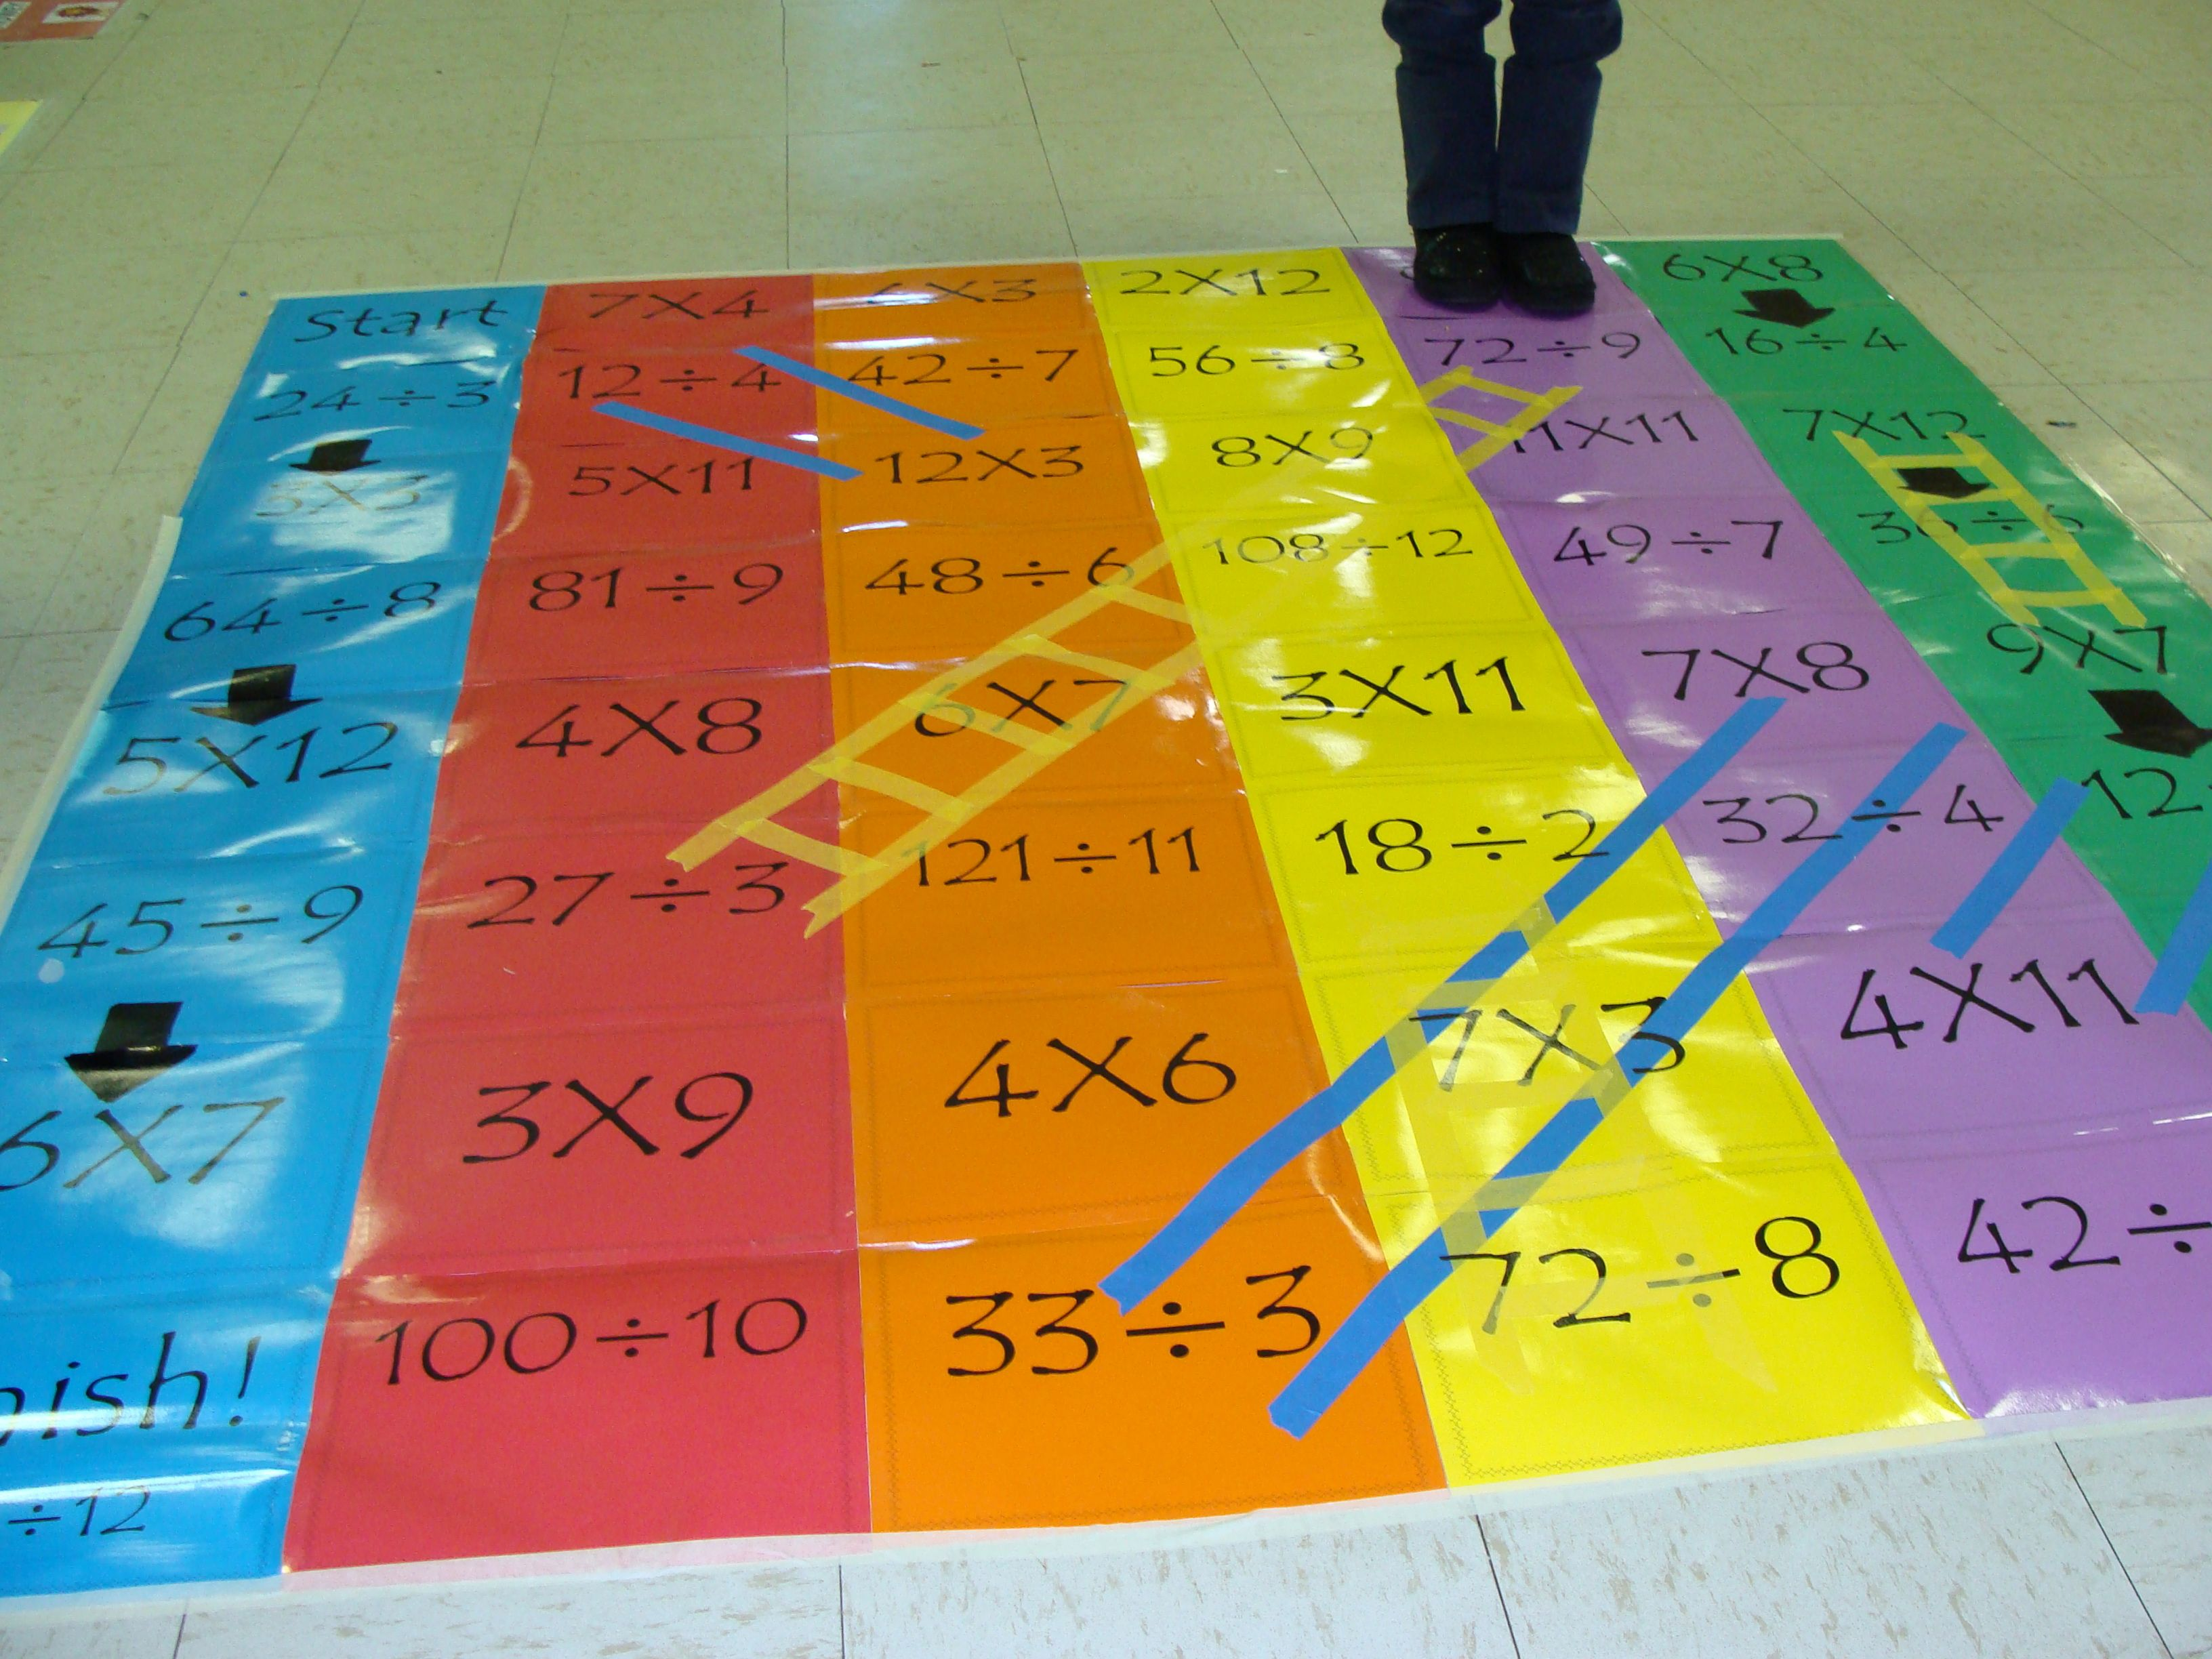 Giant Chutes And Ladders Game Board It Would Be Hard To